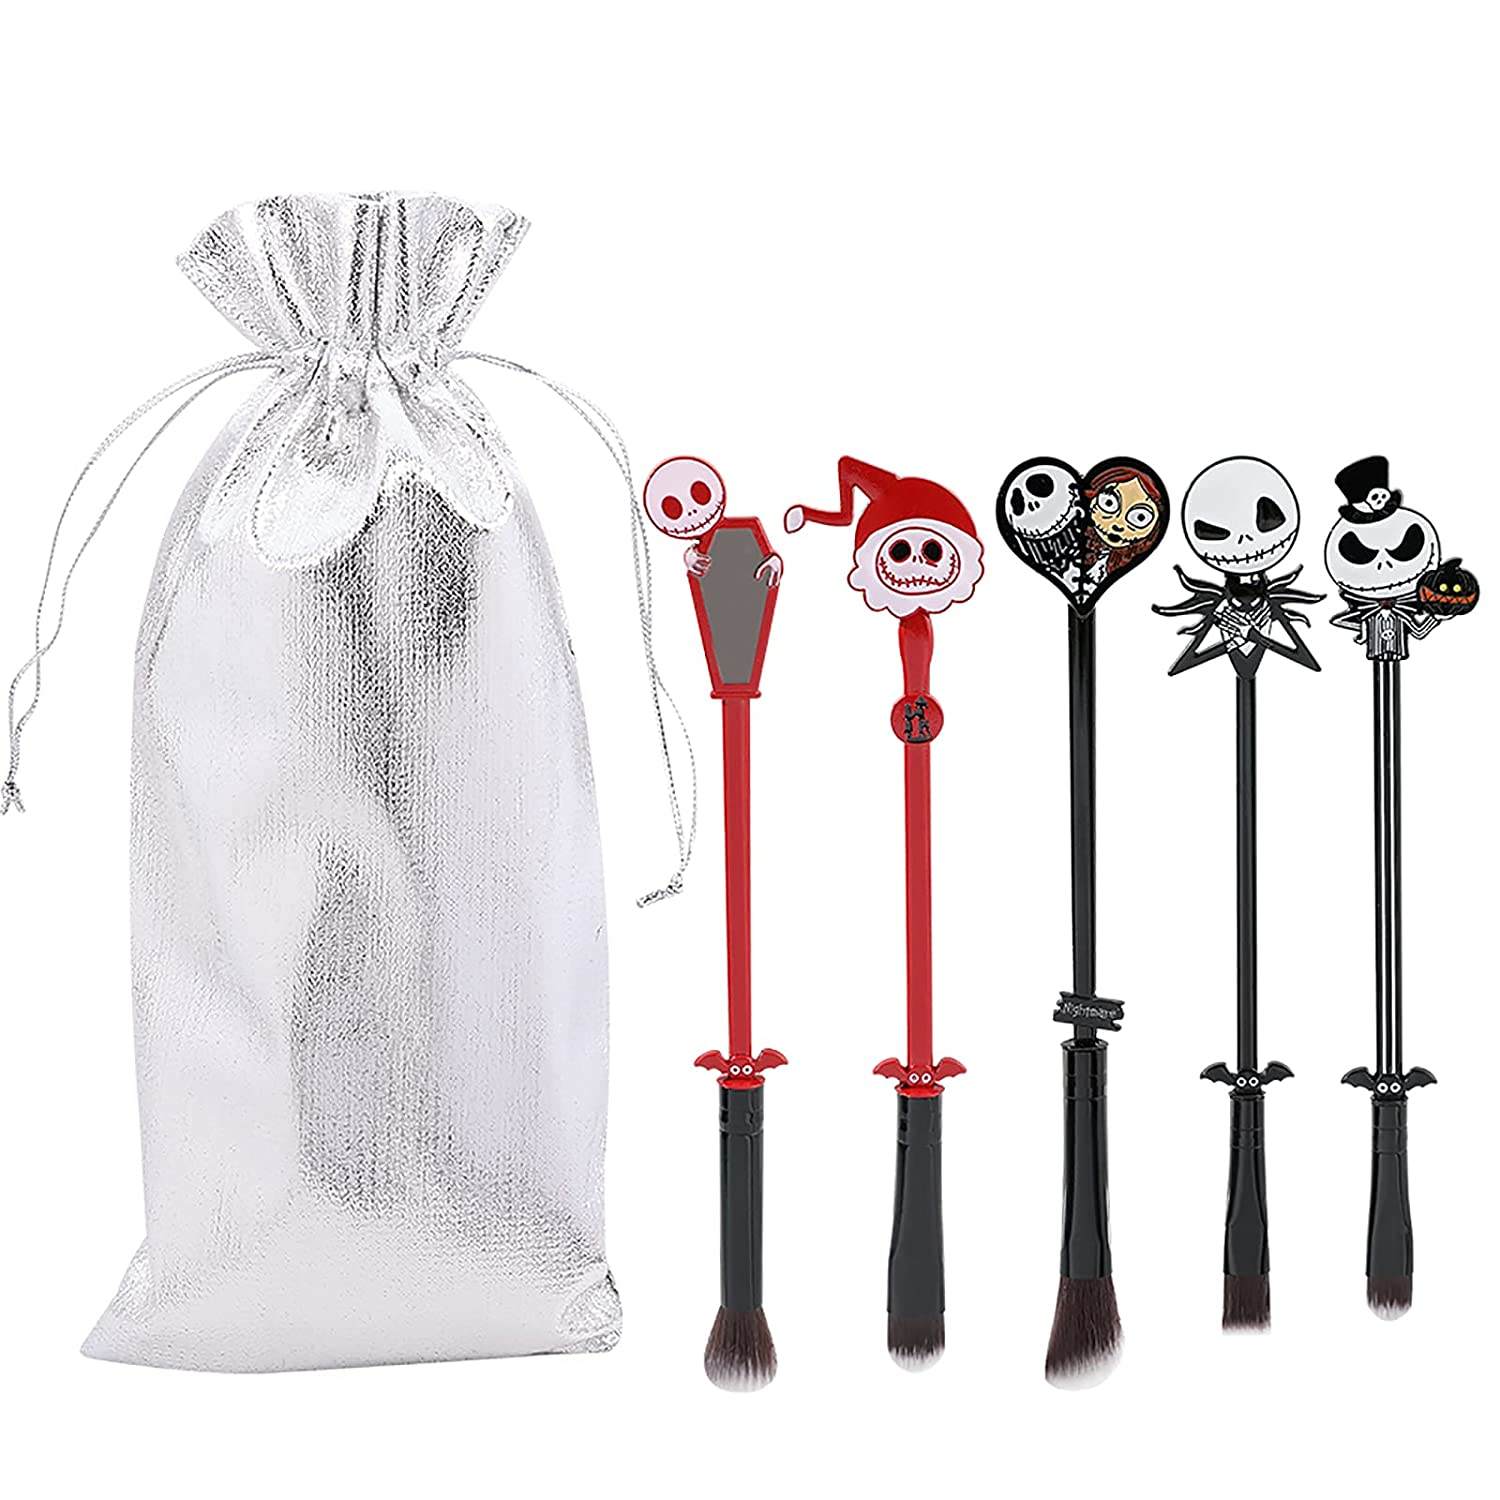 Nightmare Halloween Makeup Brush Sets All items free shipping Directly managed store G - 5pcs Classic